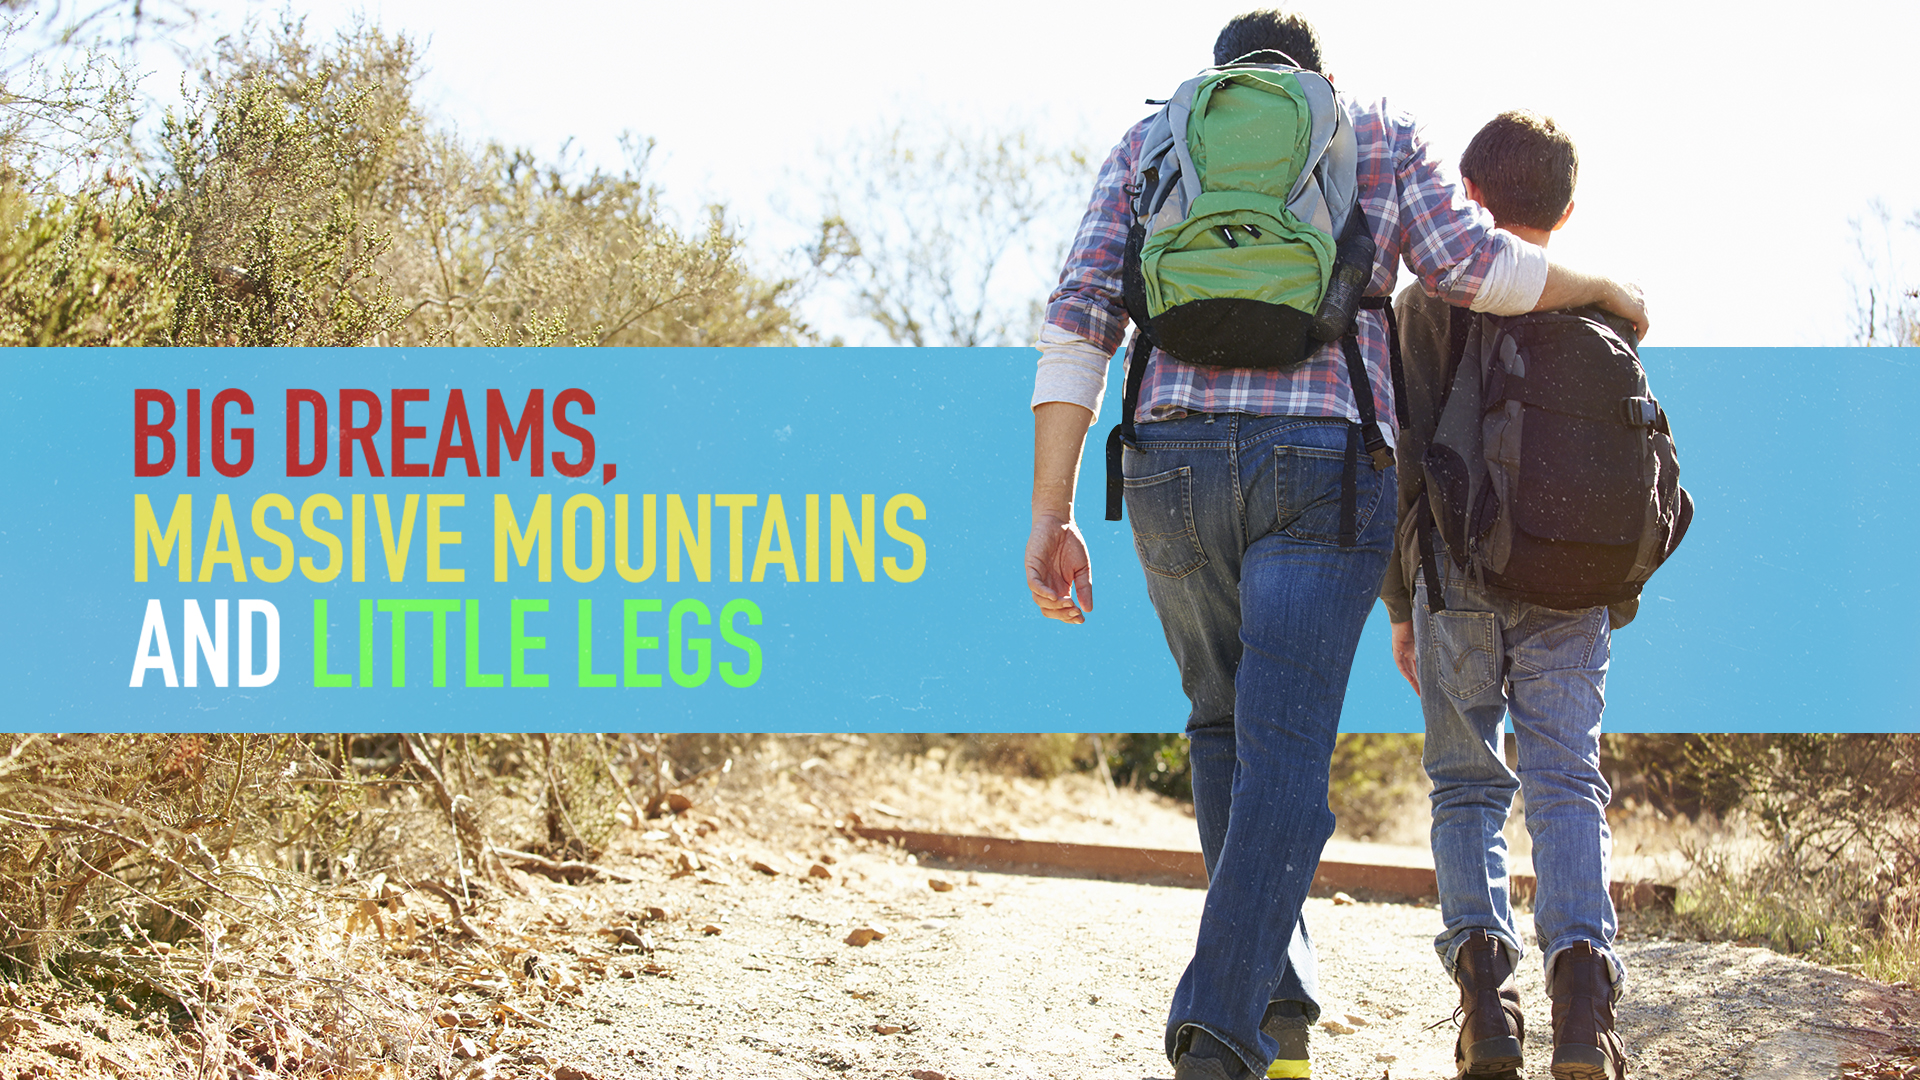 BIG DREAMS, MASSIVE MOUNTAINS AND LITTLE LEGS